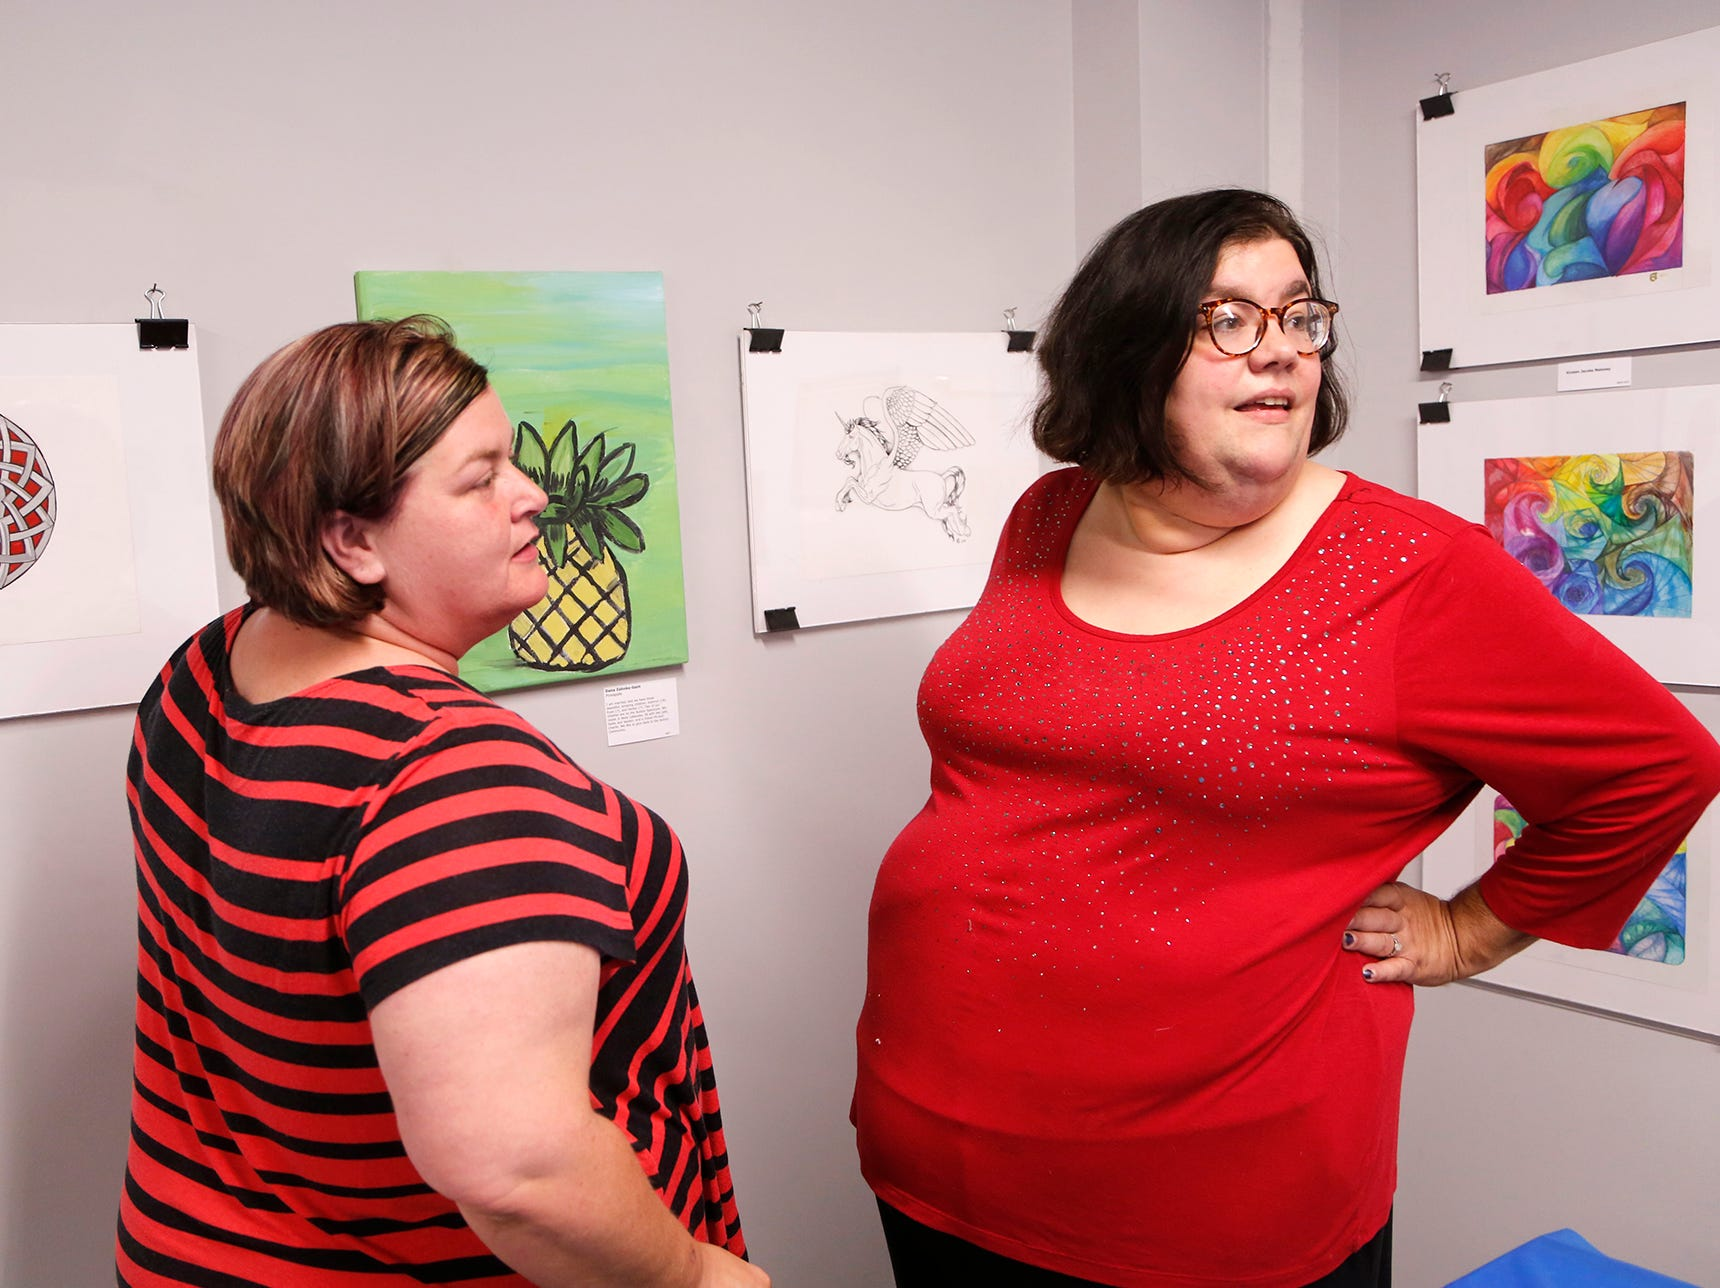 Tiffany Kendall, left, and Kirsten Jacobs Maloney look at the work on display of an art exhibit to benefit Special Parents Special Kids Thursday, September 13, 2018, at Lala Gallery & Studio, 511 Ferry Street in downtown Lafayette. Maloney has several of her works on display at the exhibit.